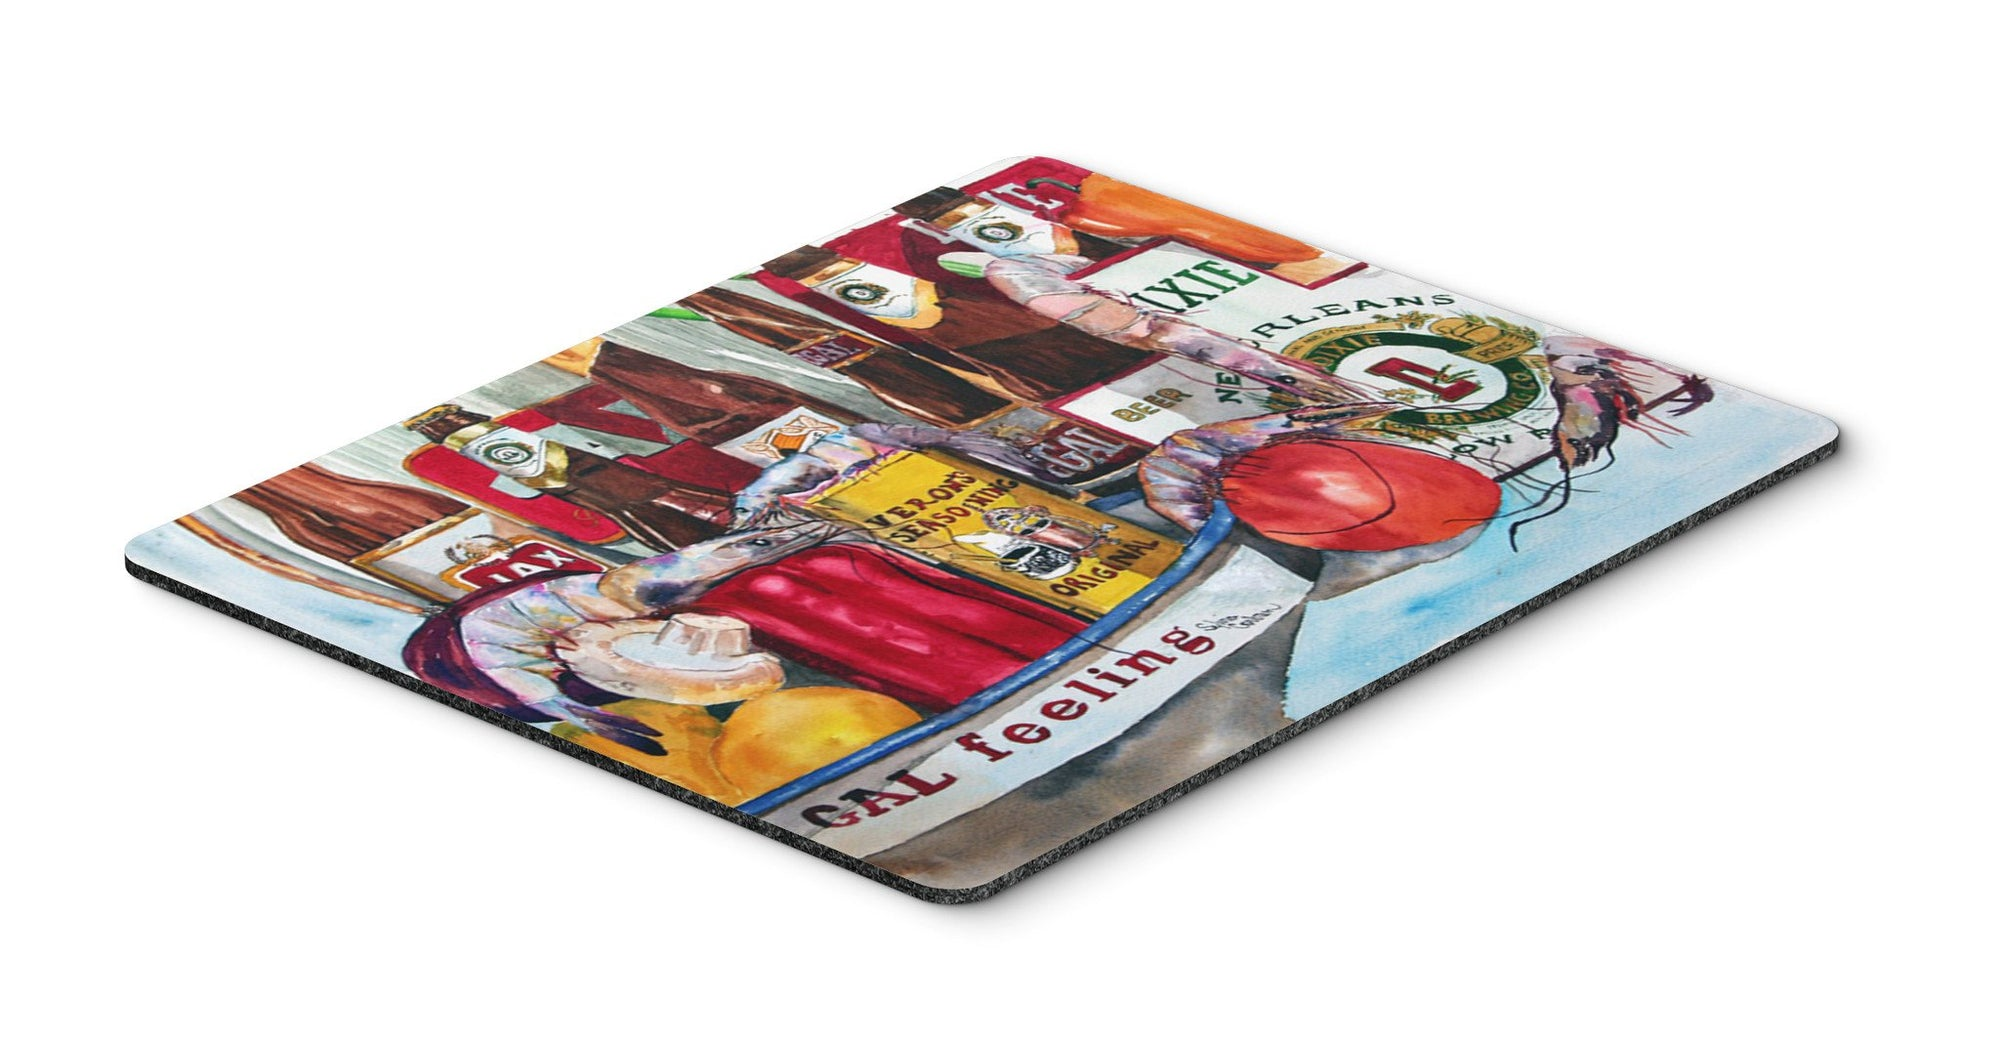 Veron's and New Orleans Beers Mouse pad, hot pad, or trivet by Caroline's Treasures